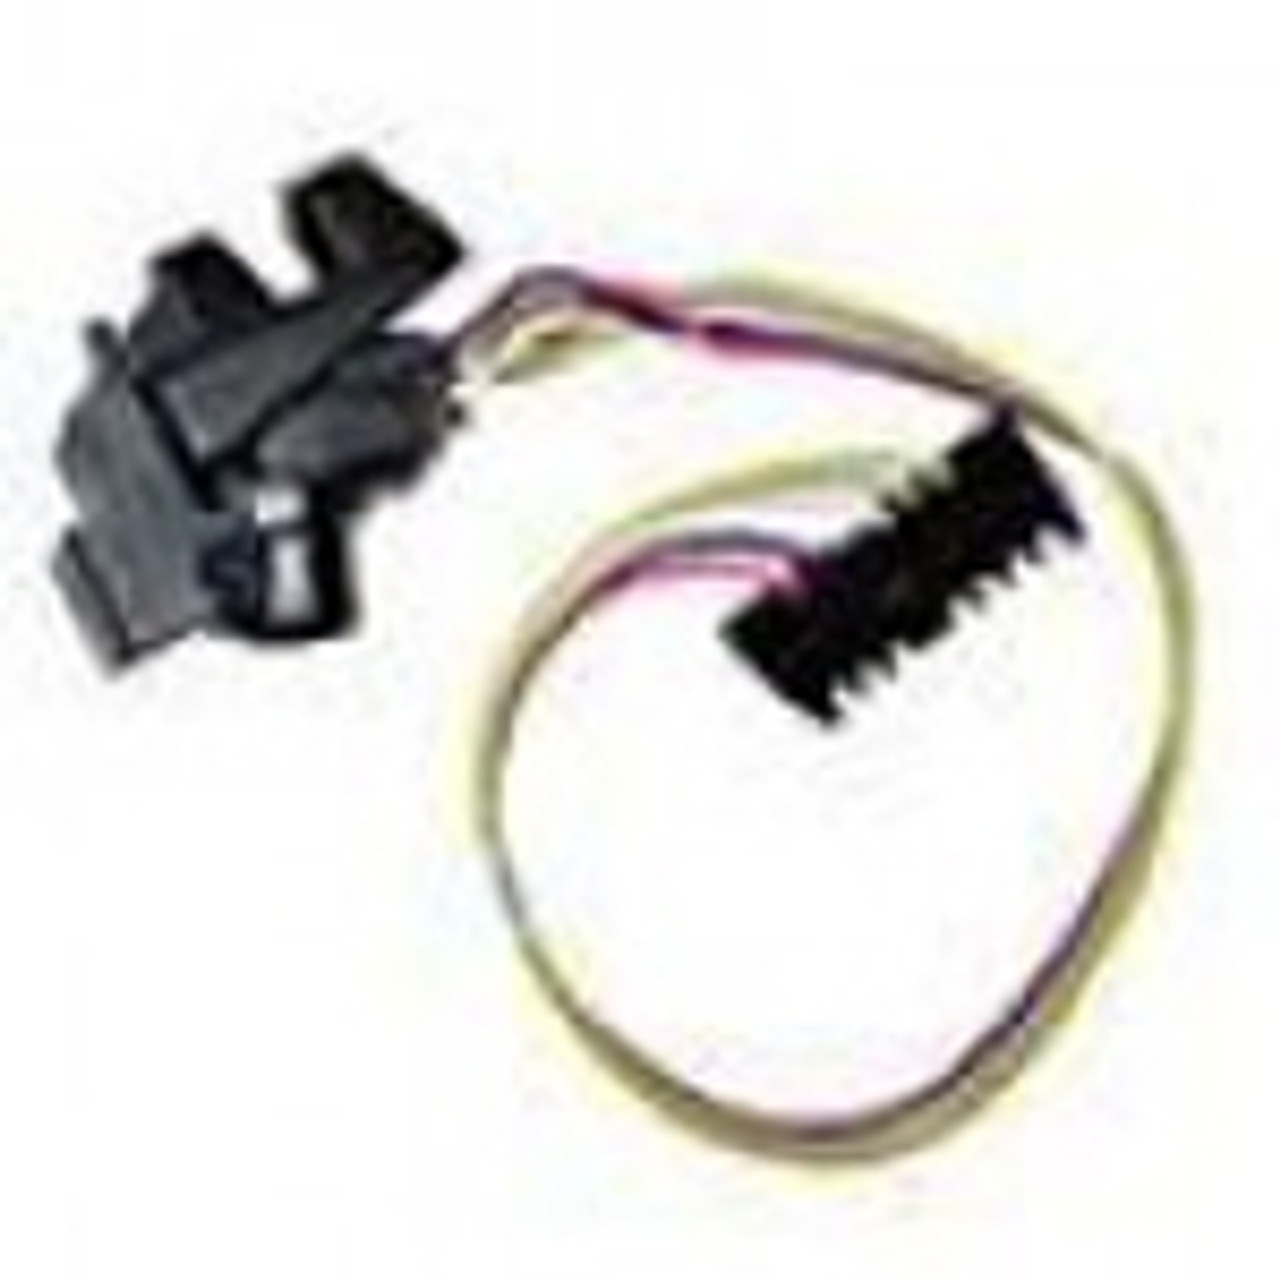 Wiper Switches